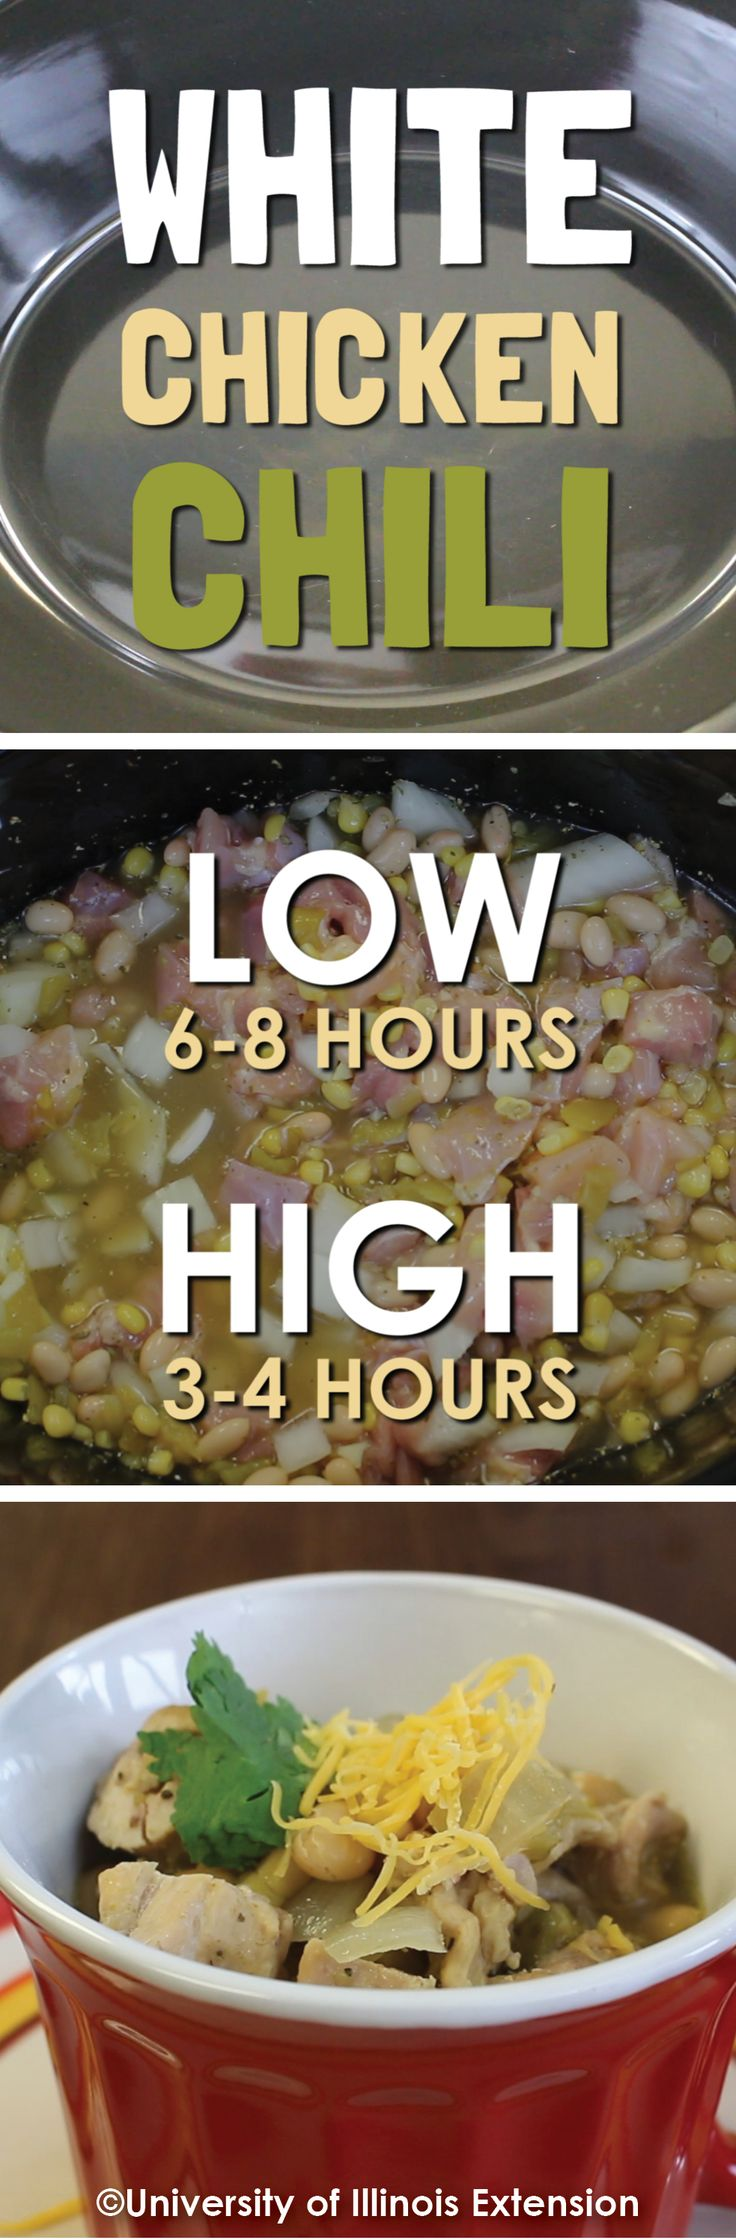 Nothing says comfort like easyslow cooker chili! Use canned corn and beans for a meal you can prep in the morning and have waiting for dinner. Perfect for parties too! Find this and more crockpot recipes at http://web.extension.illinois.edu/dmp/eb344/entry_12960/.